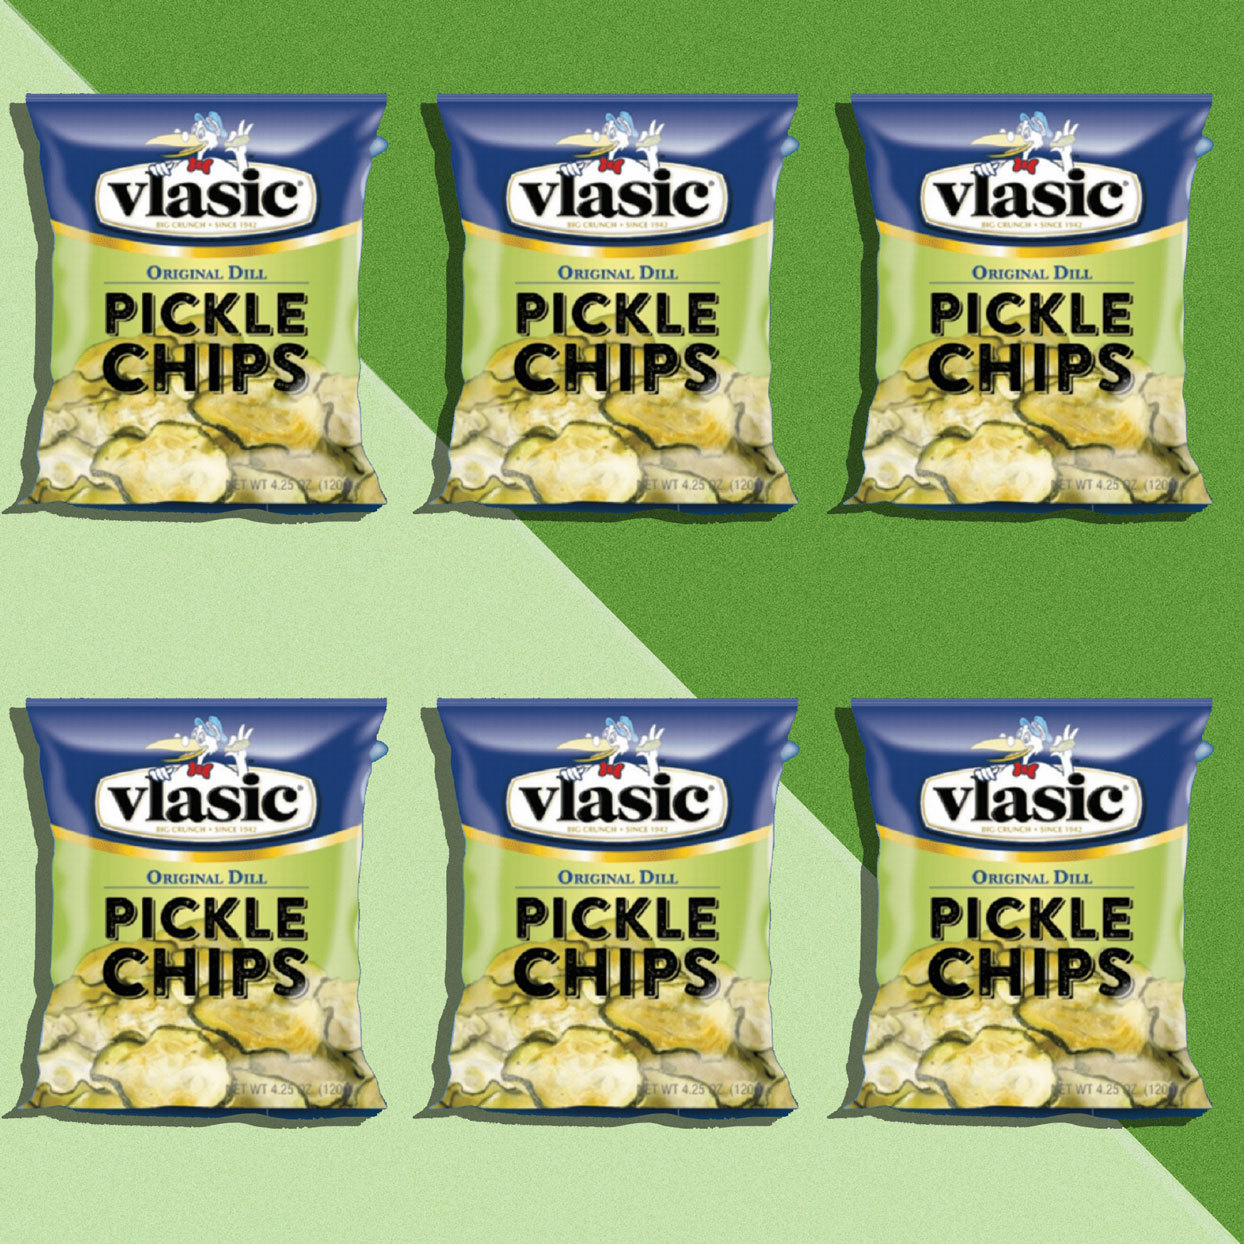 Vlasic Pickle Chips